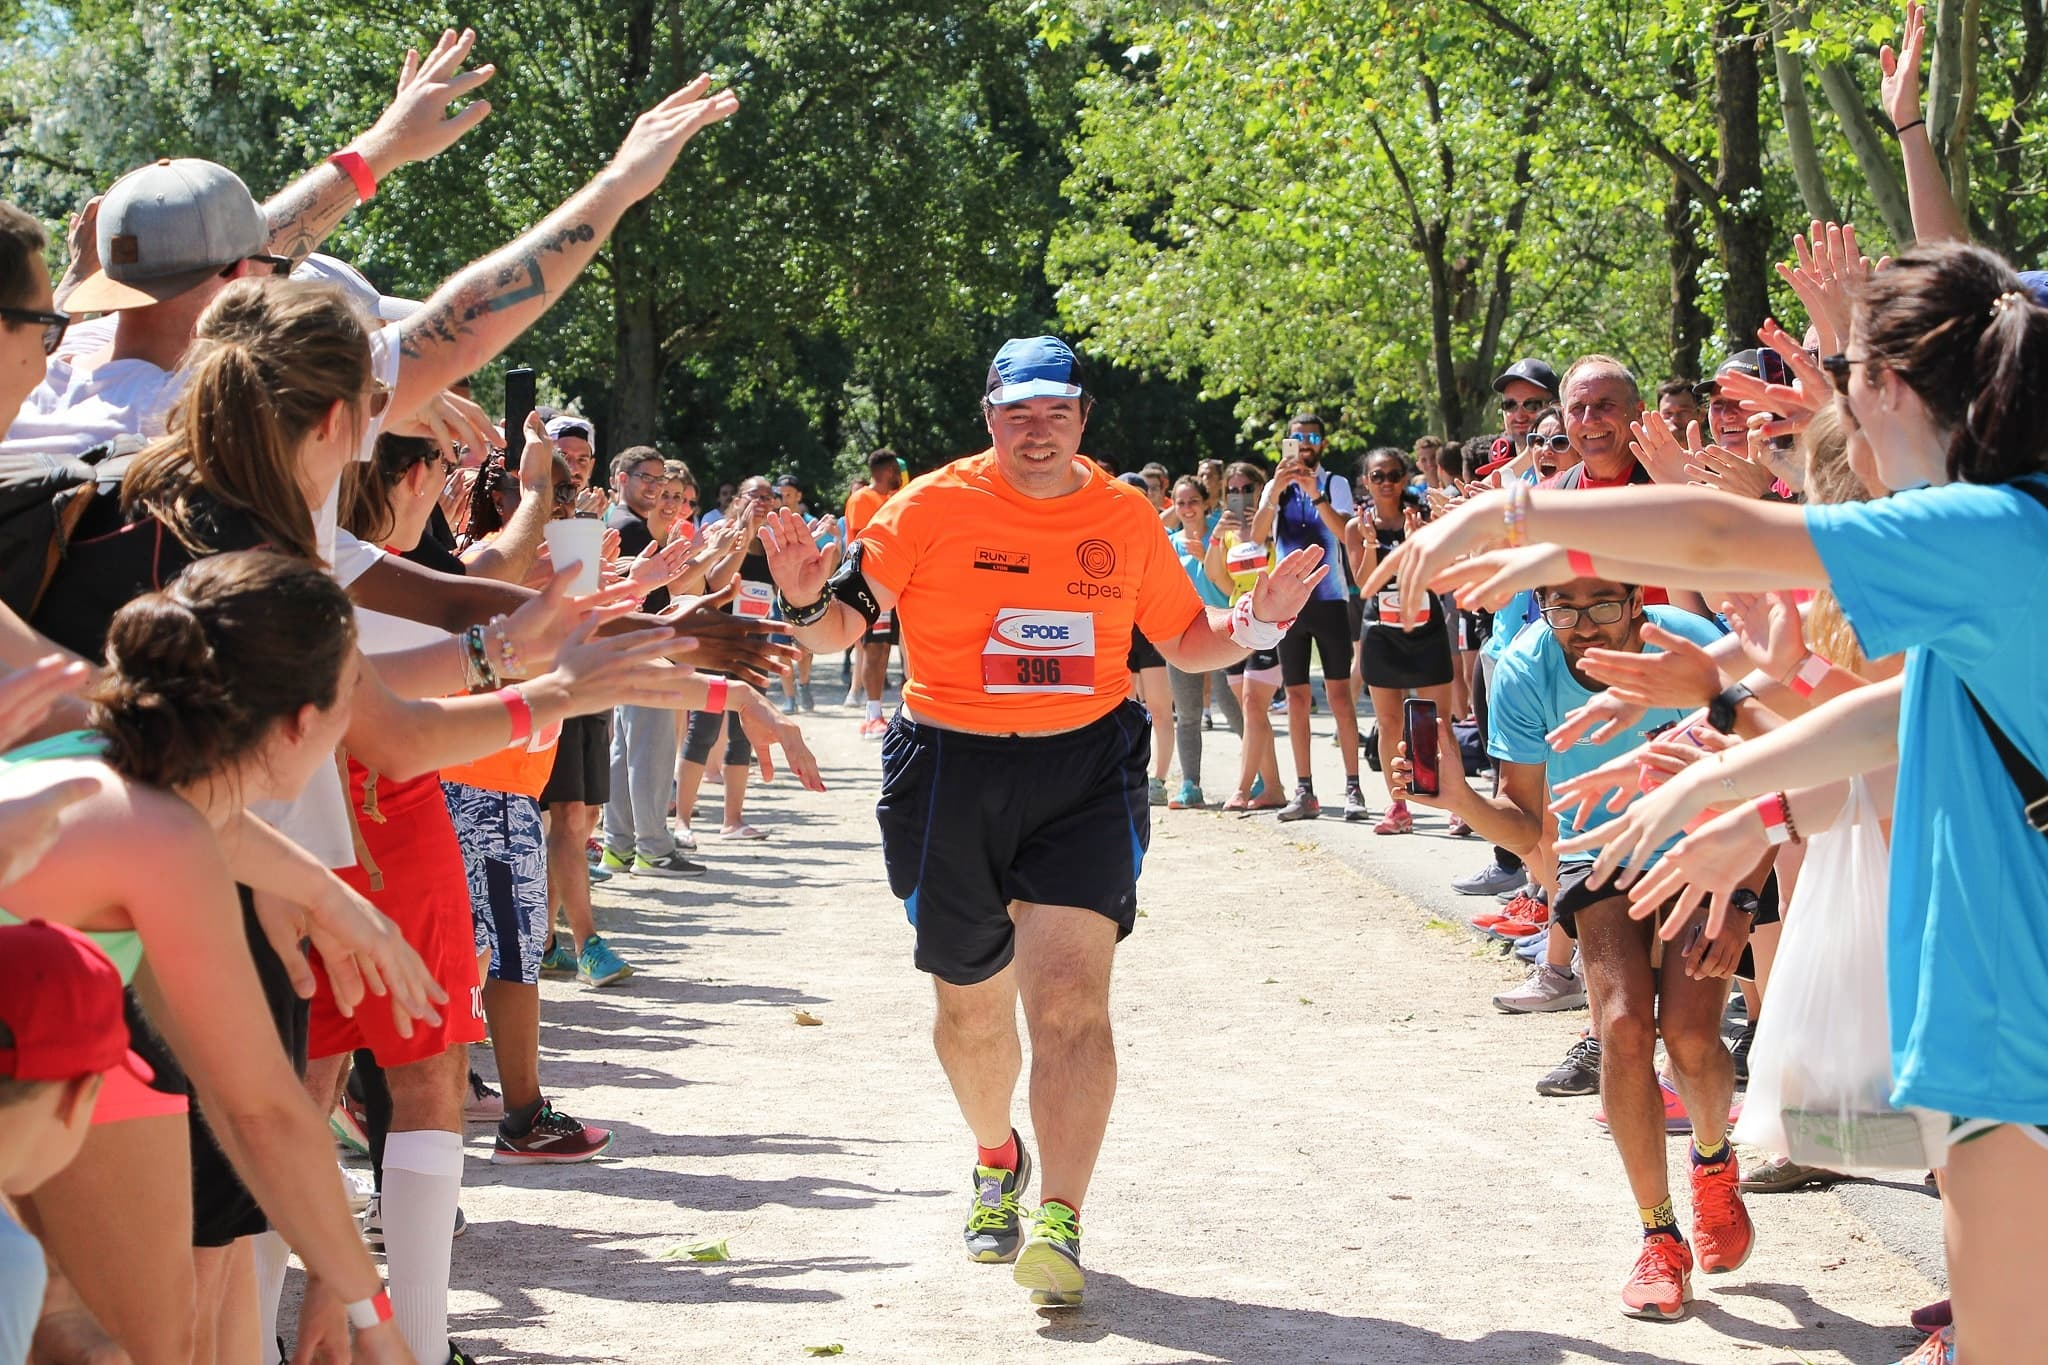 Photo Run'Eat - Le 10km des copains